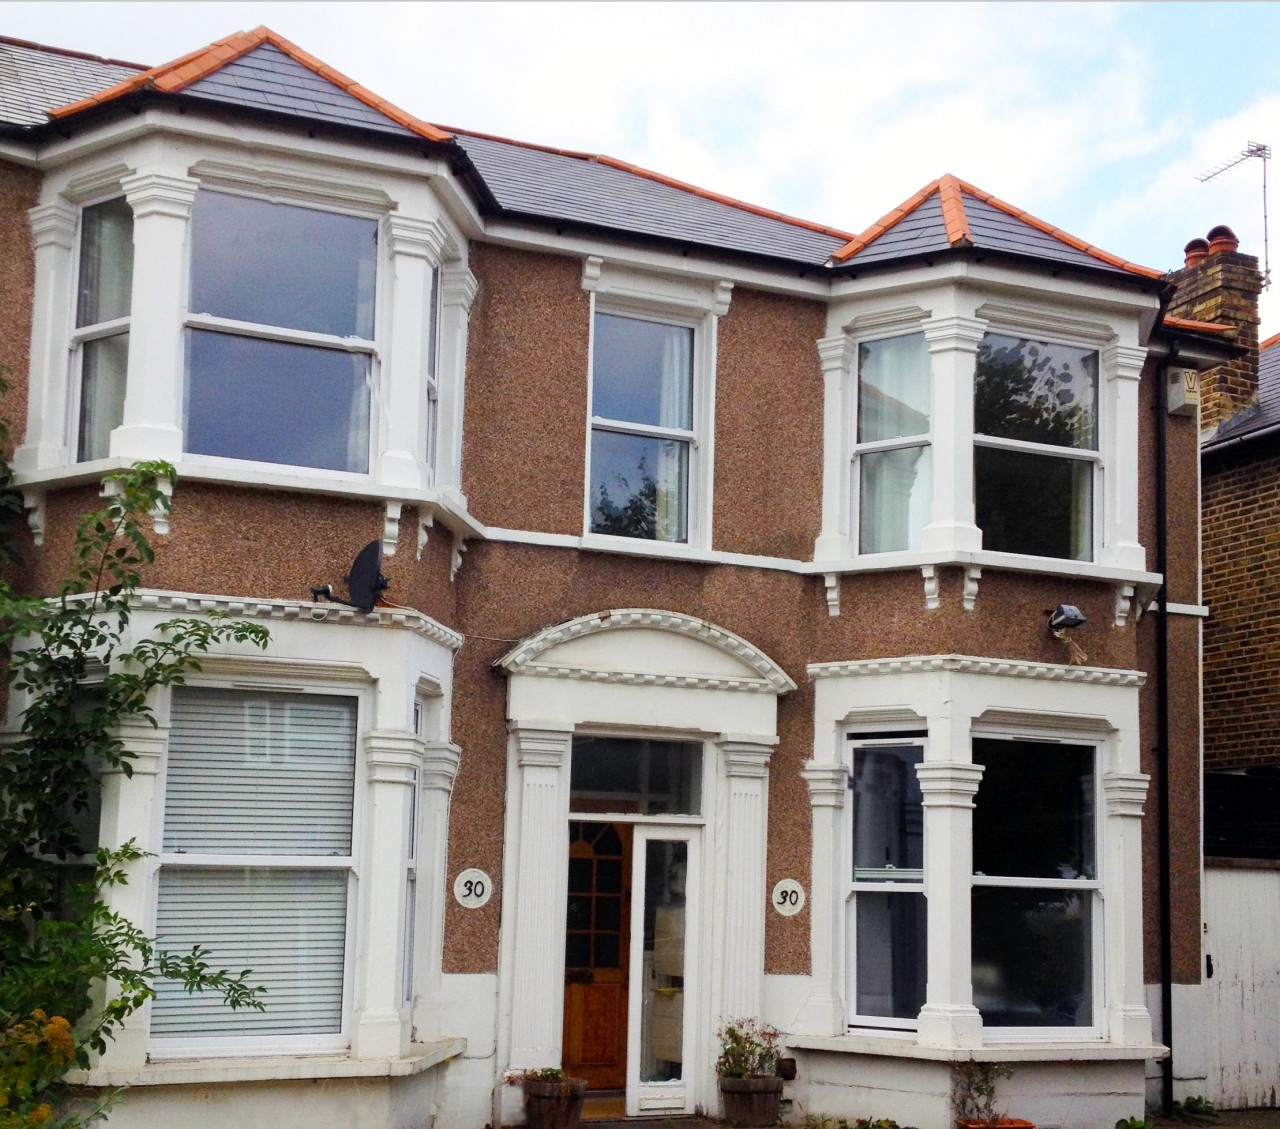 Find Rental Homes Online: Lovely Victorian One Bedroom Garden Flat To Rent In London